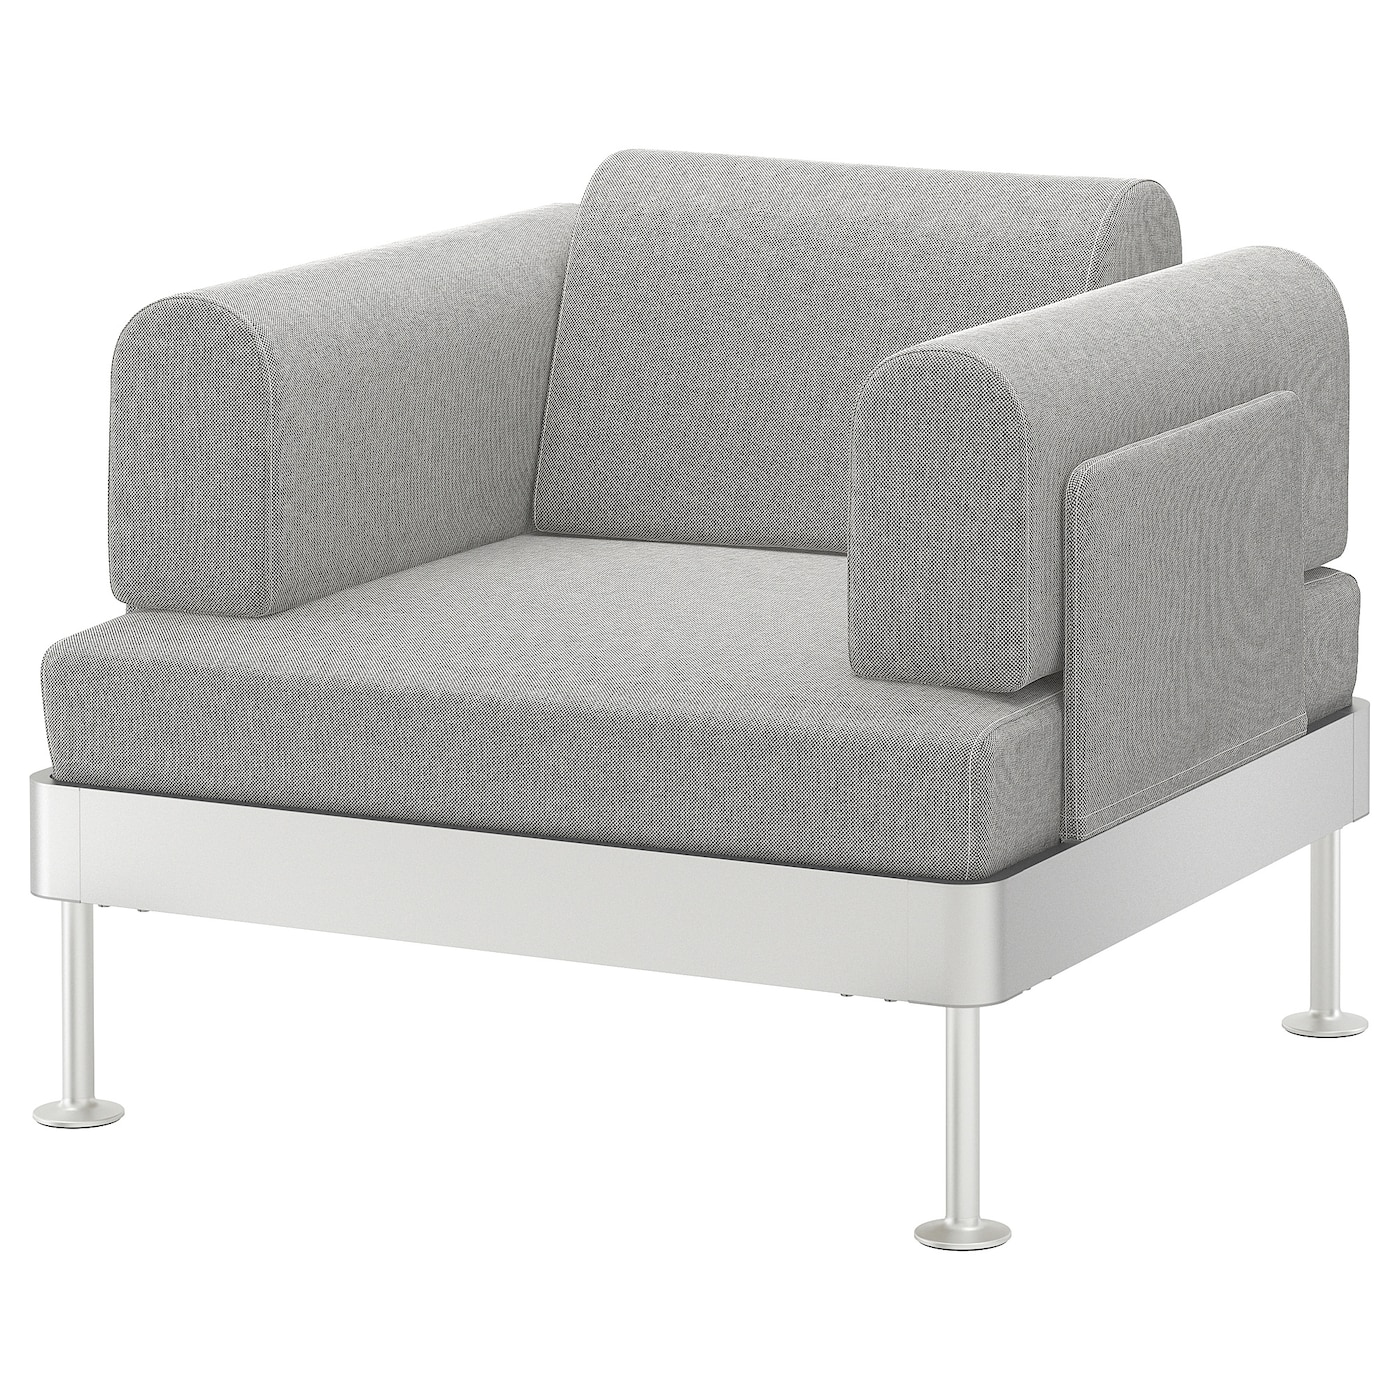 IKEA DELAKTIG armchair The cover is easy to keep clean as it is removable and can be washed.